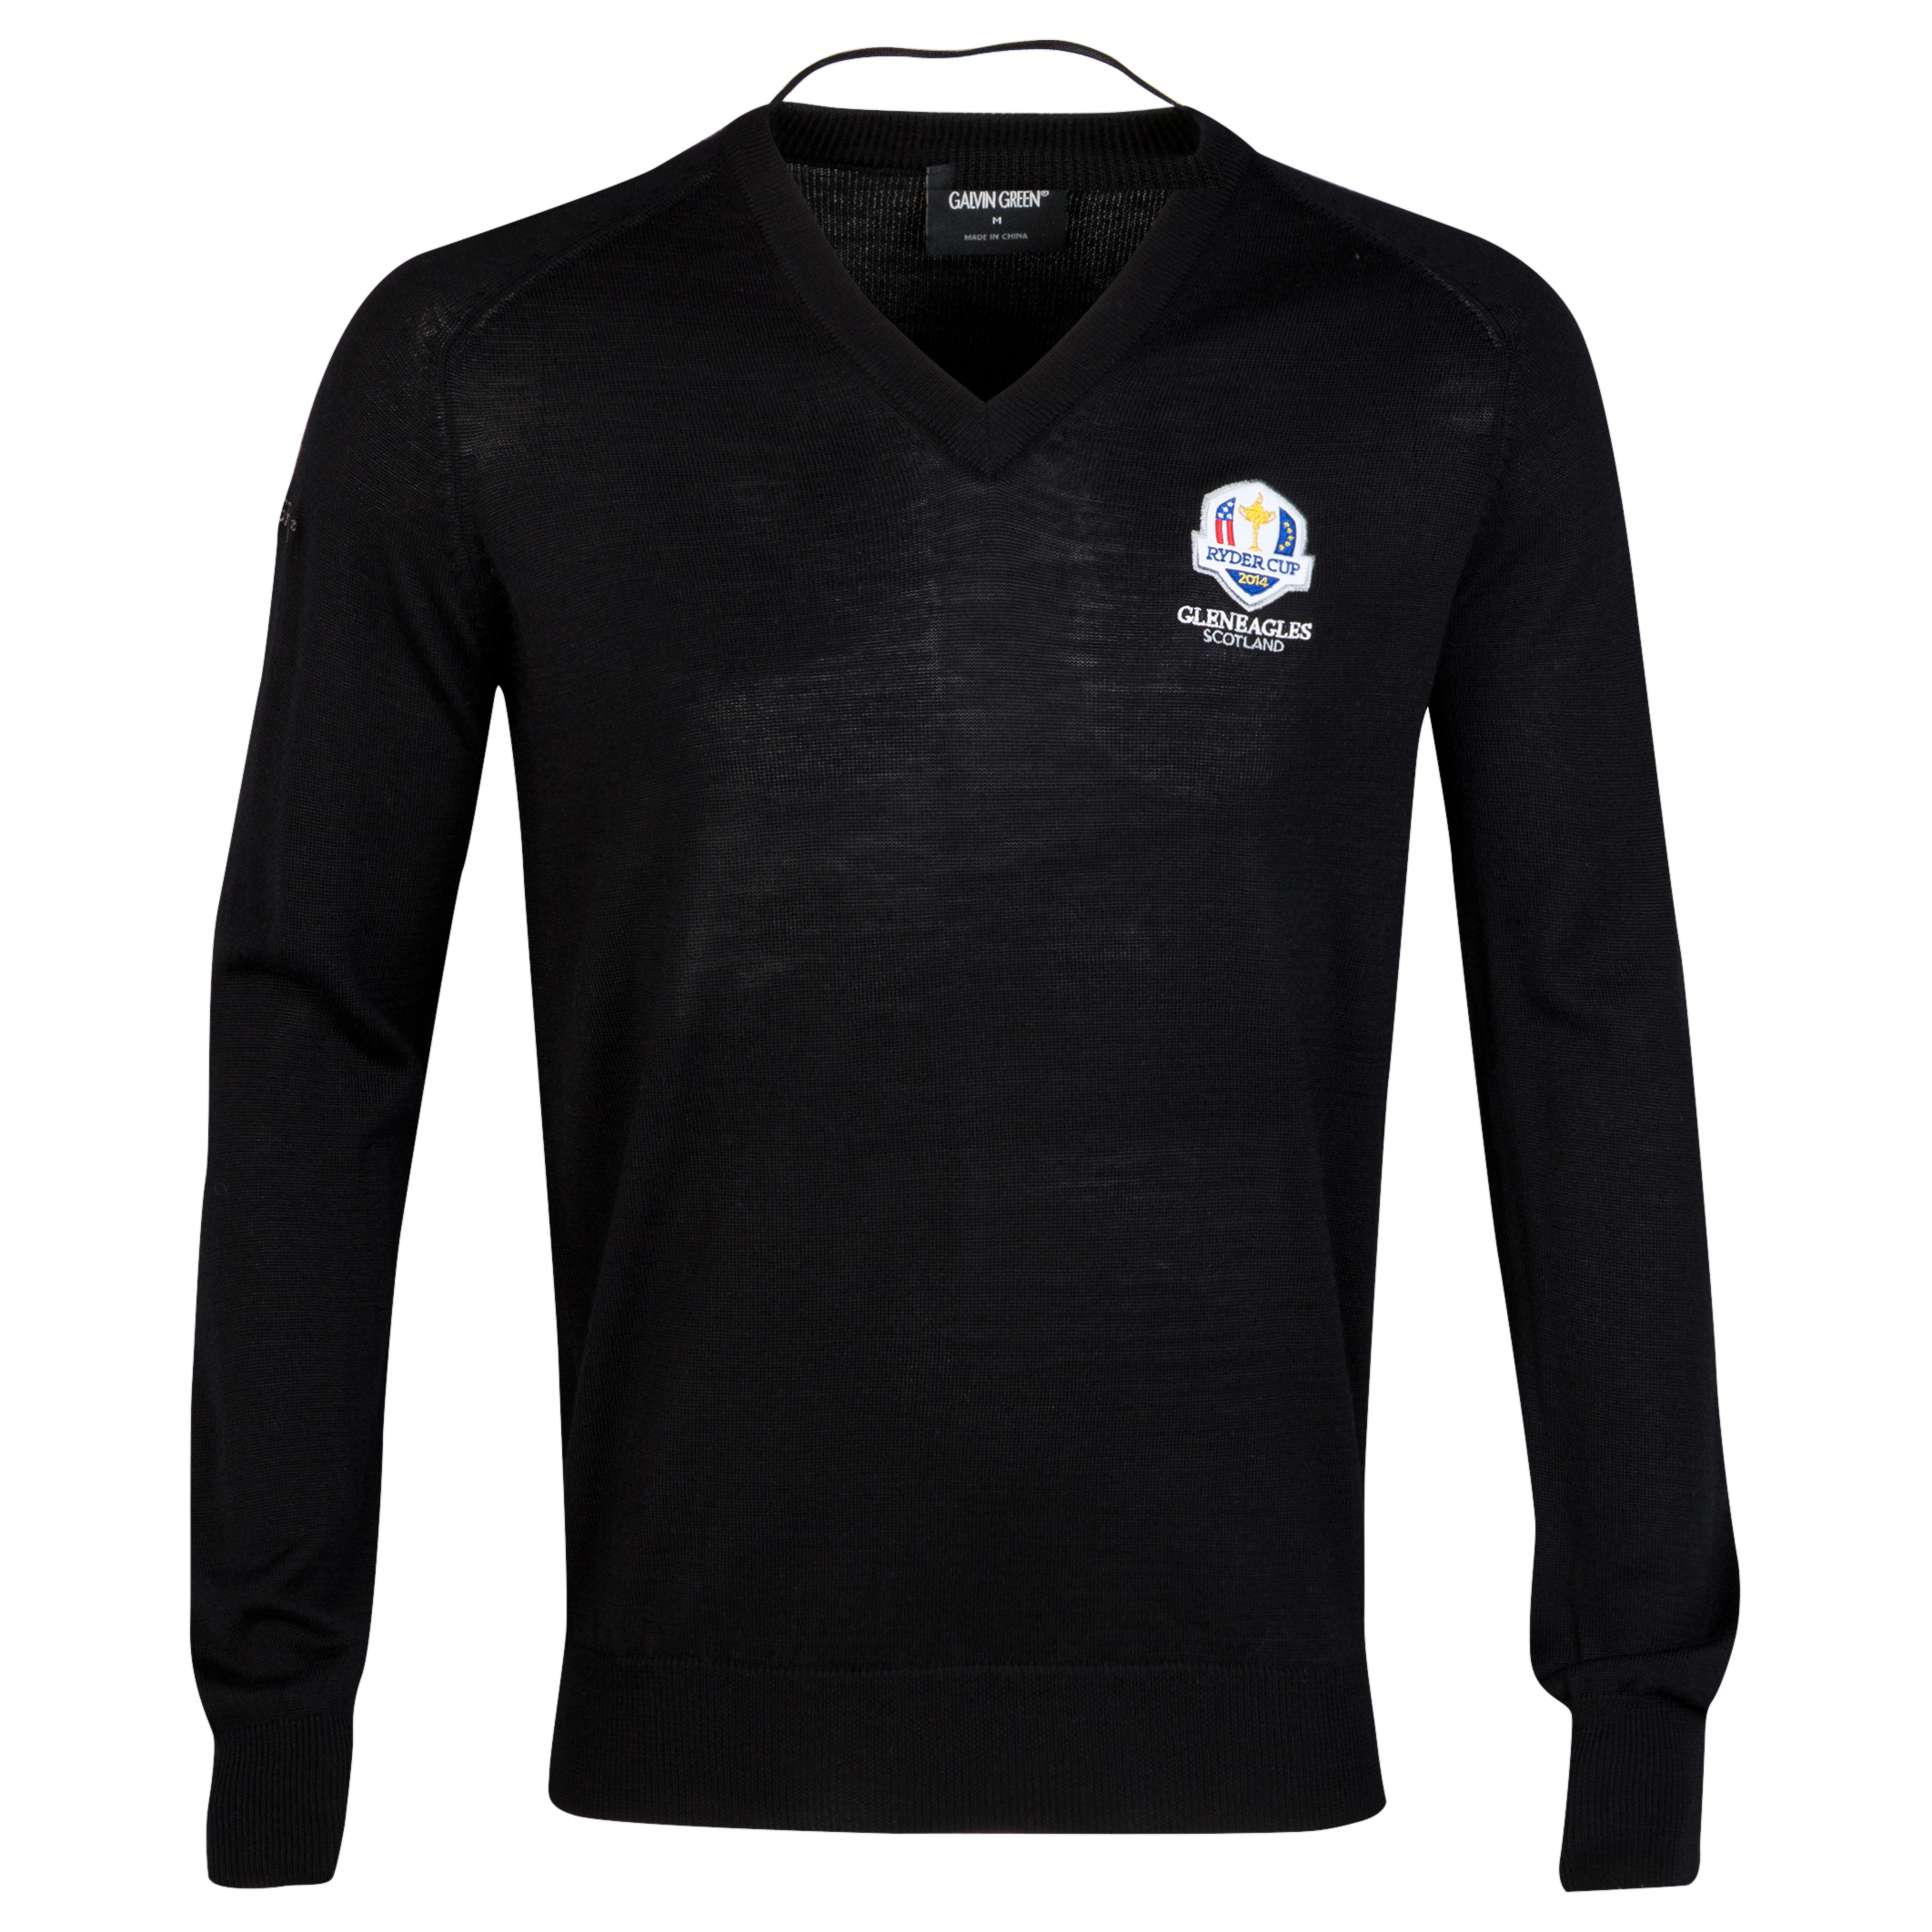 The 2014 Ryder Cup Galvin Green Clive Knitted Sweater Black